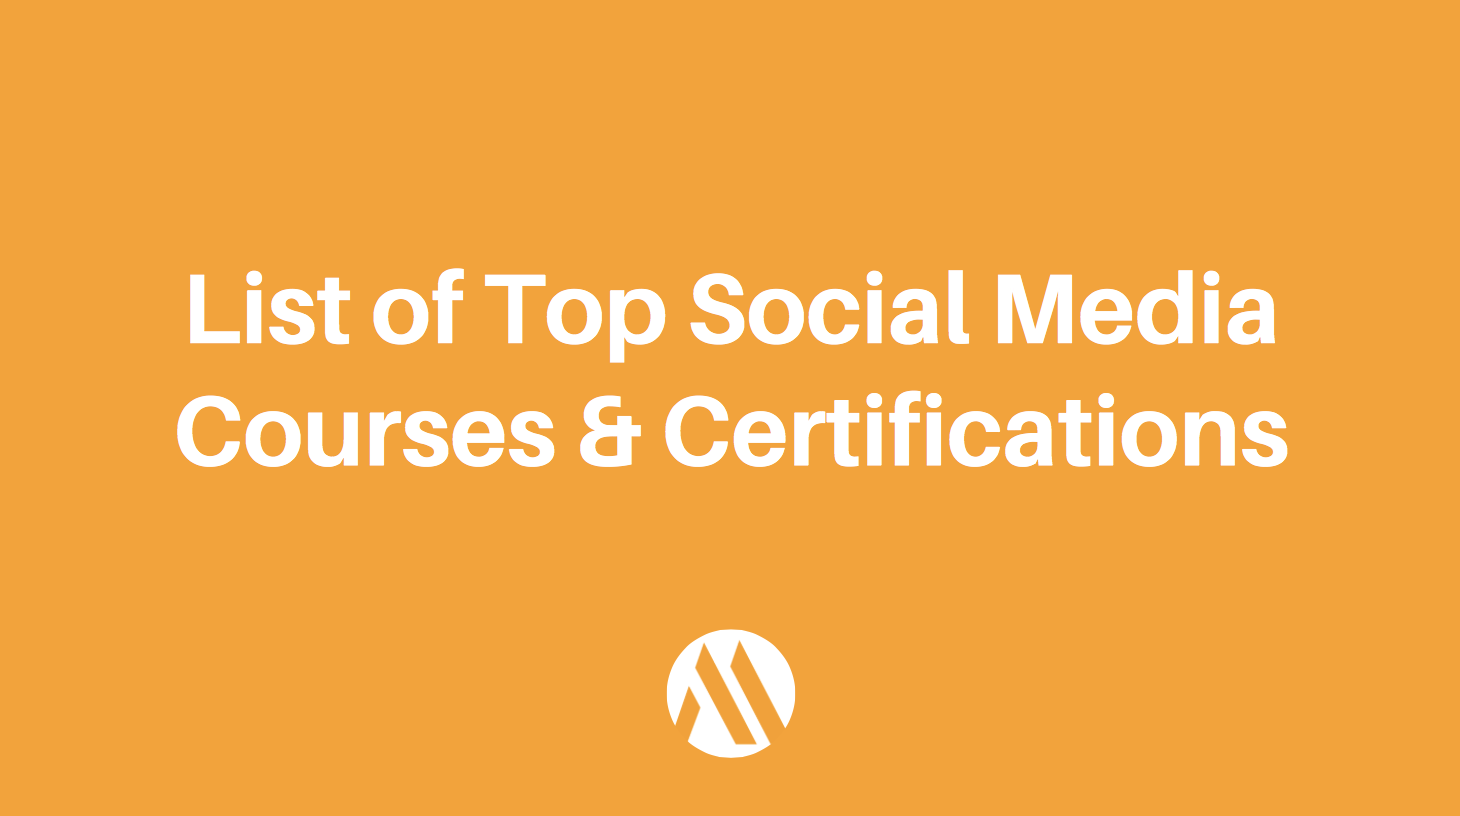 List of Top Online Social Media Courses & Certifications